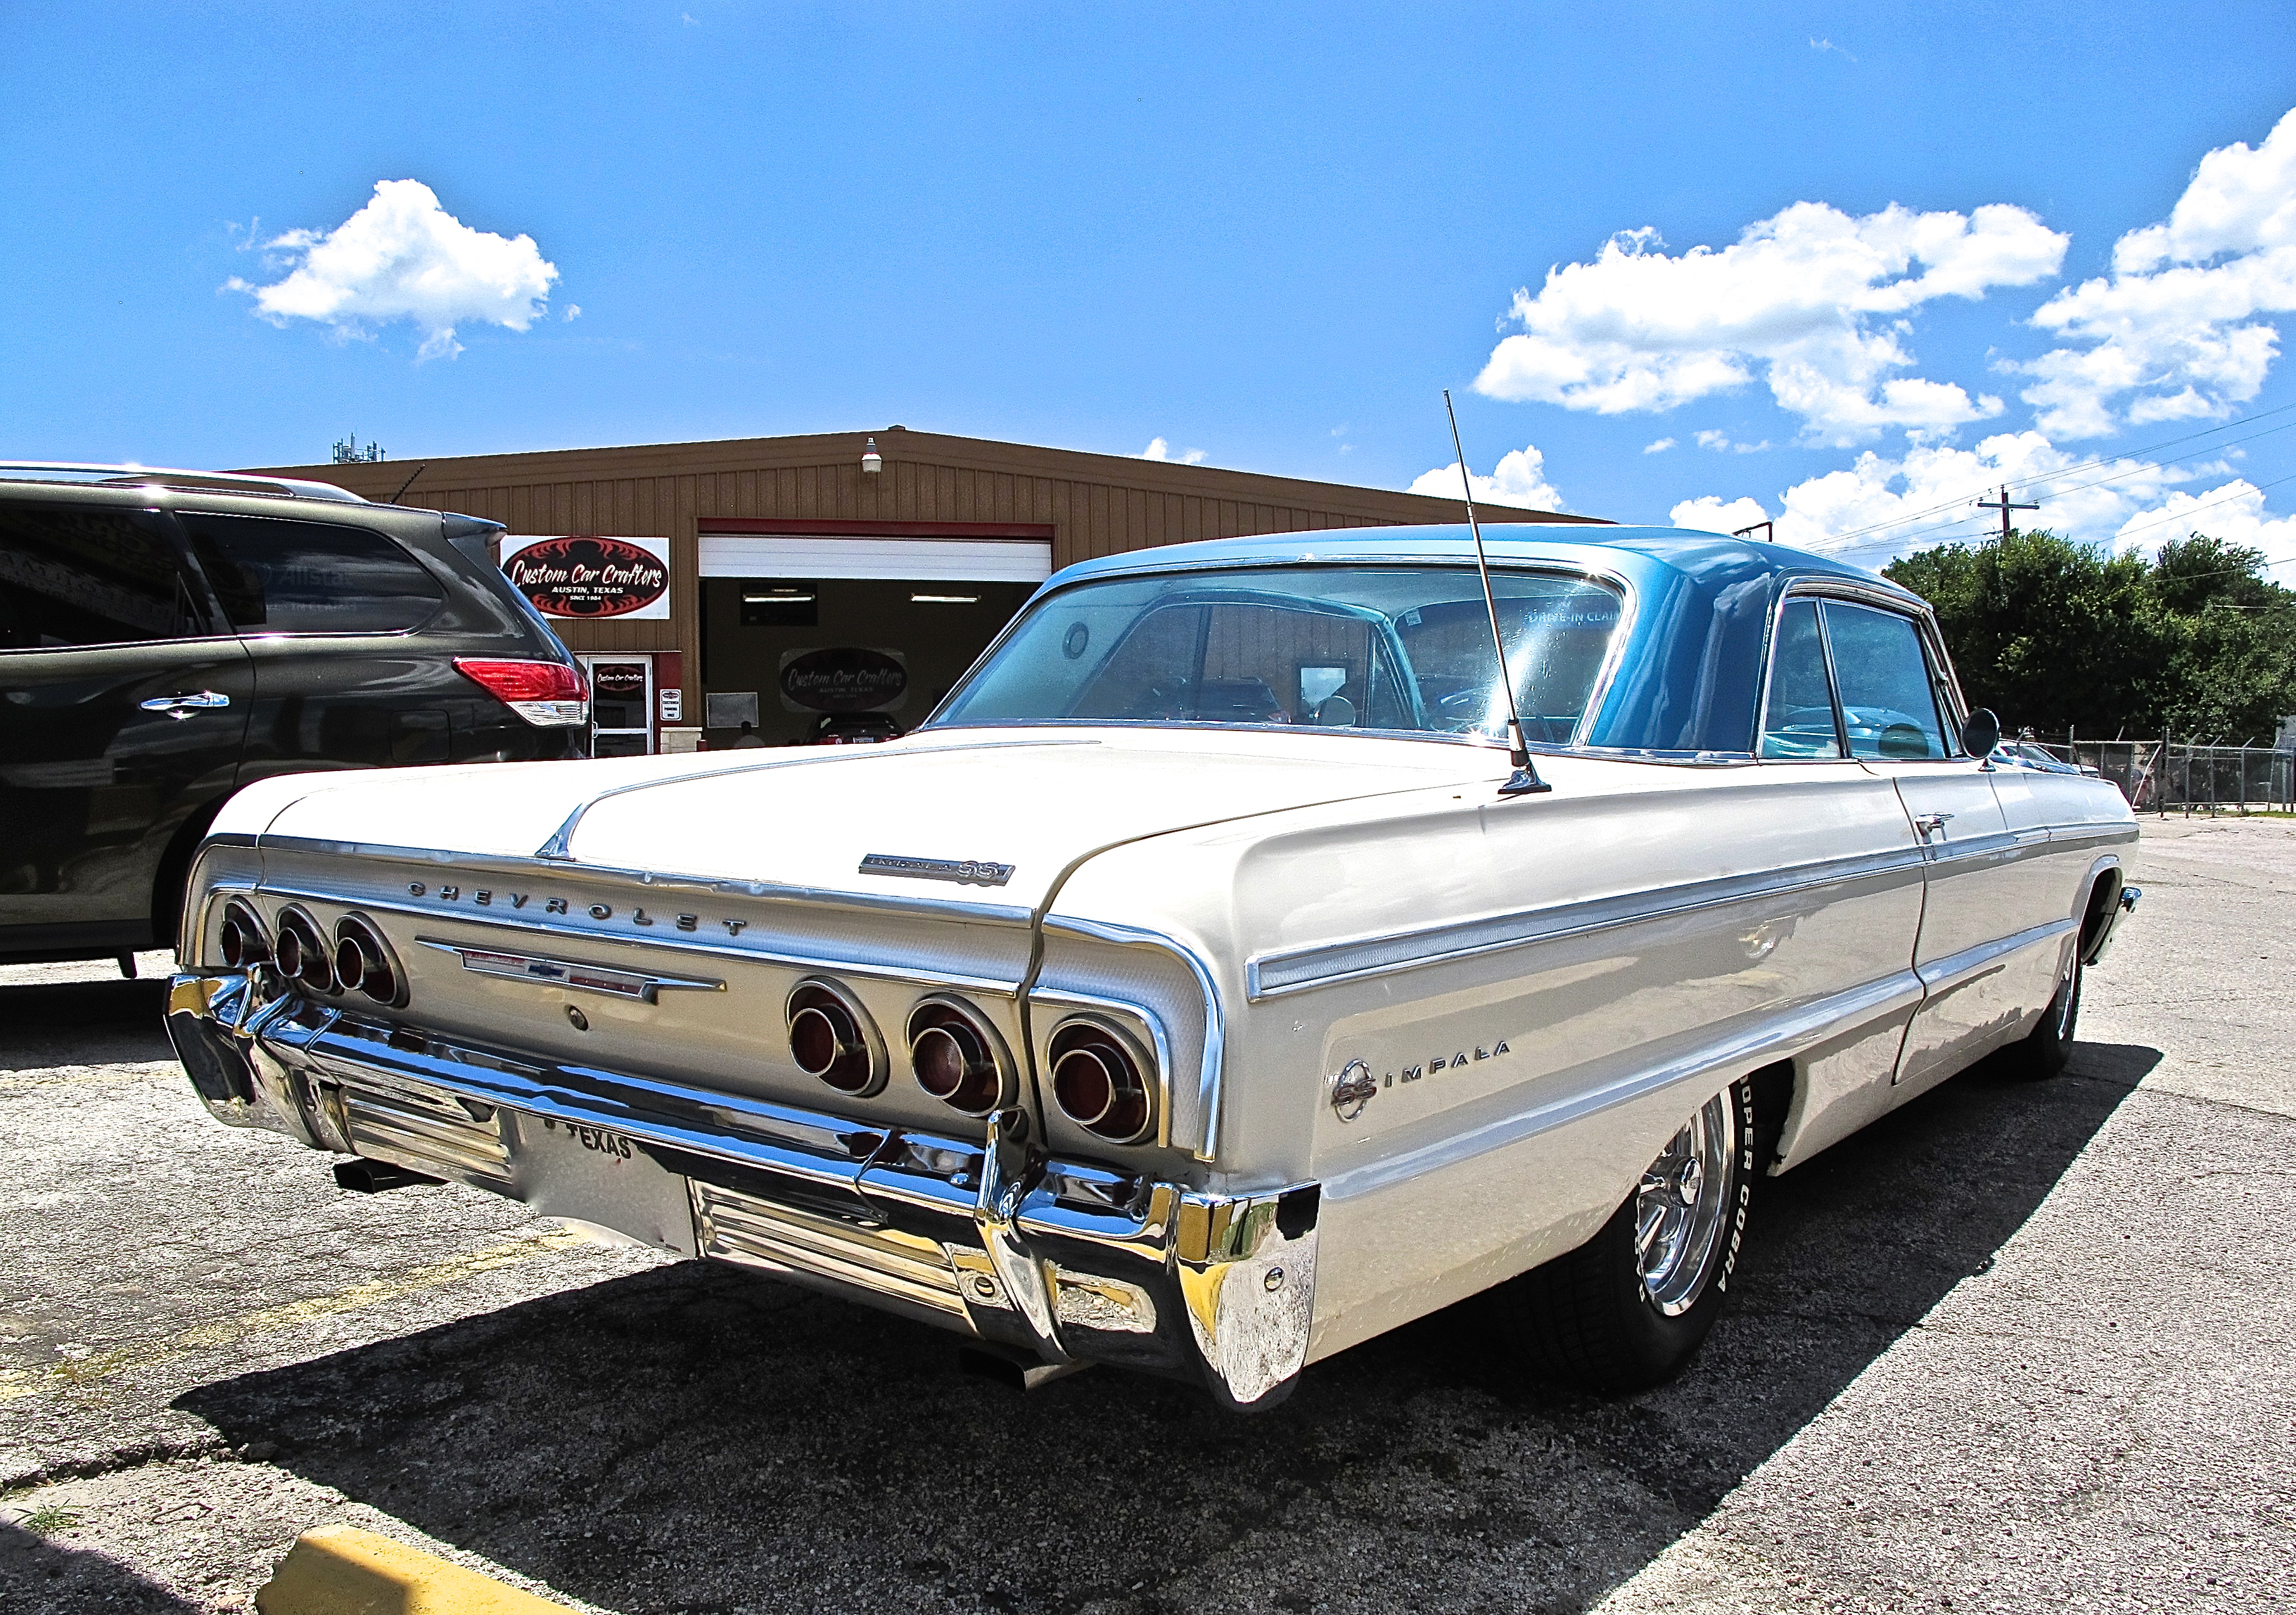 1964 Chevrolet Impala SS on McNeil Rd in N Austin